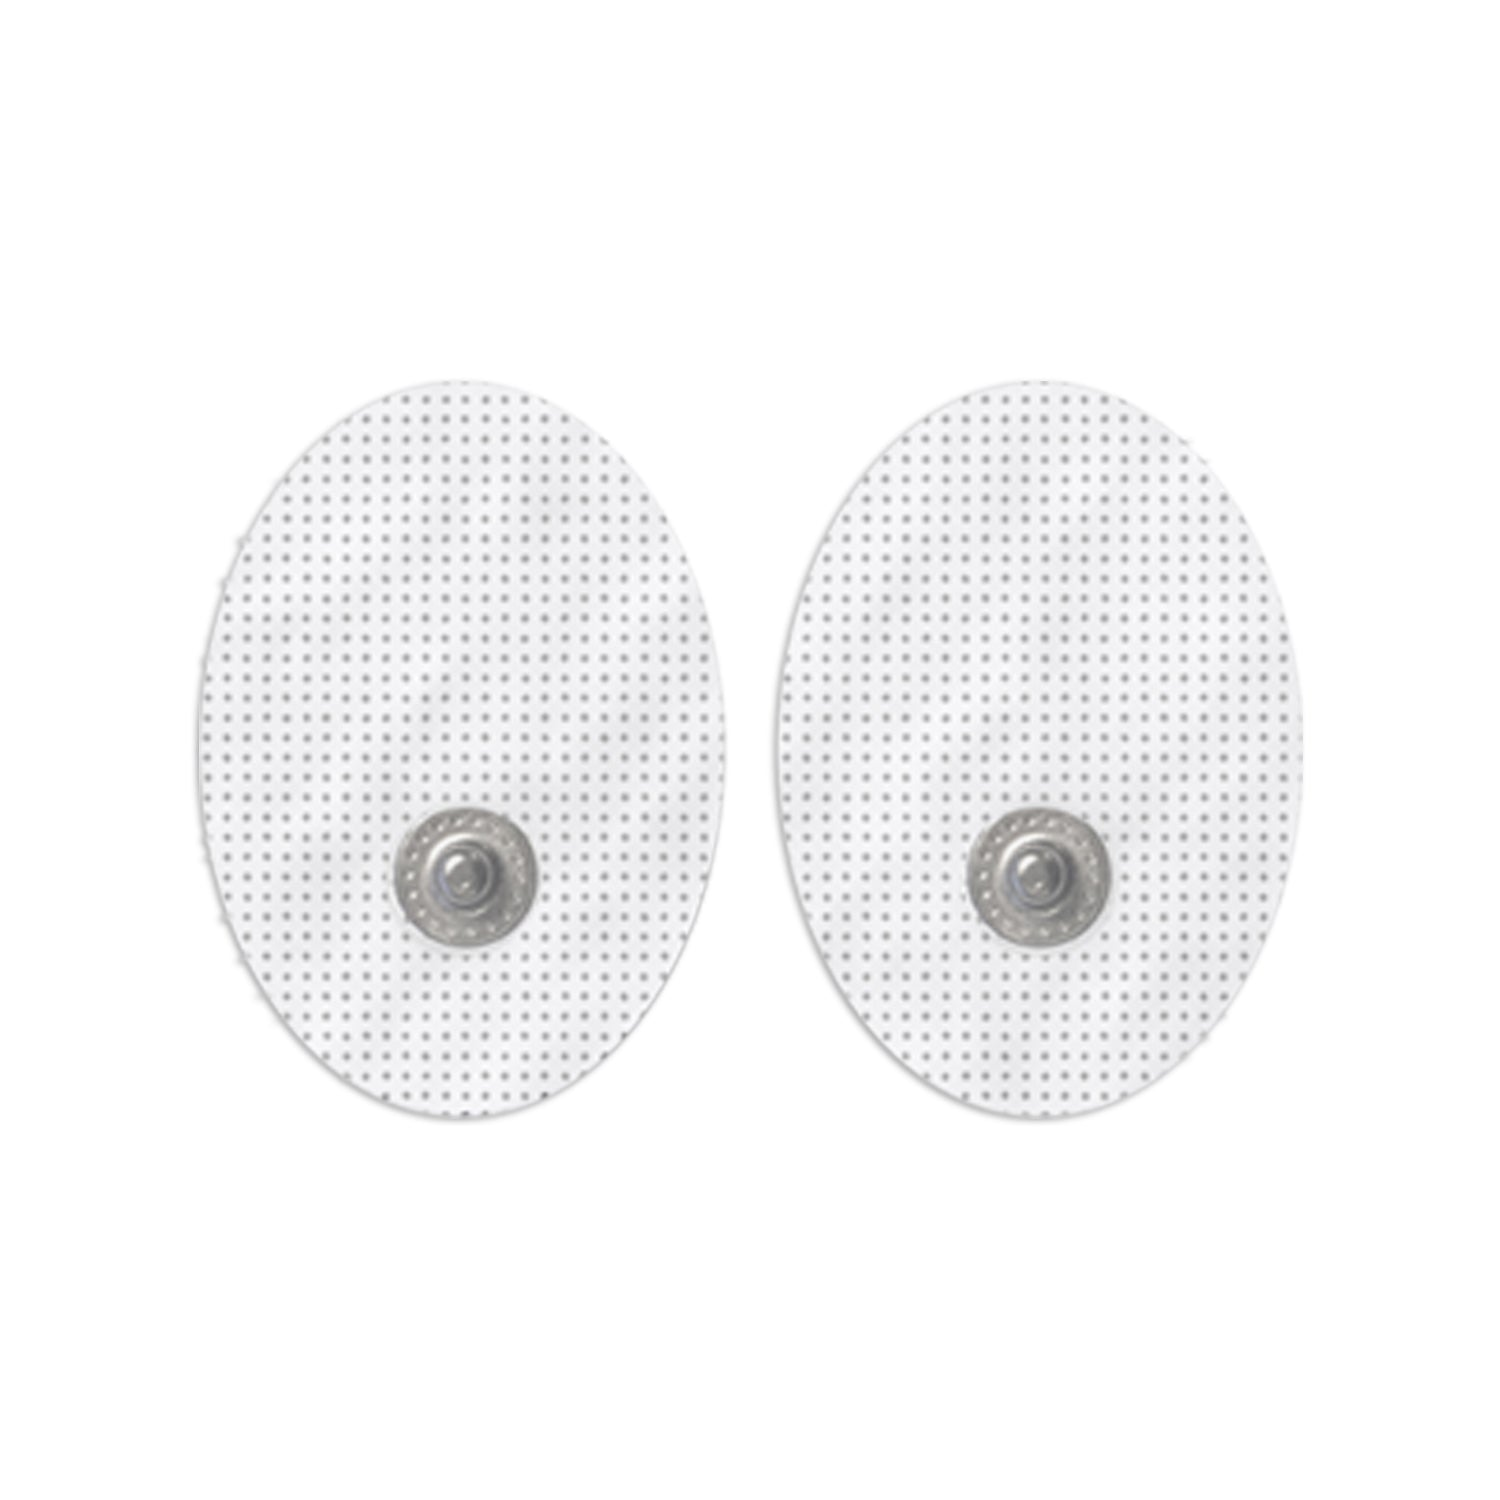 20 Pairs (40 Pcs) White Pair of Snap-On Small Oval-Shaped Electrode Patches Pads - HealthmateForever